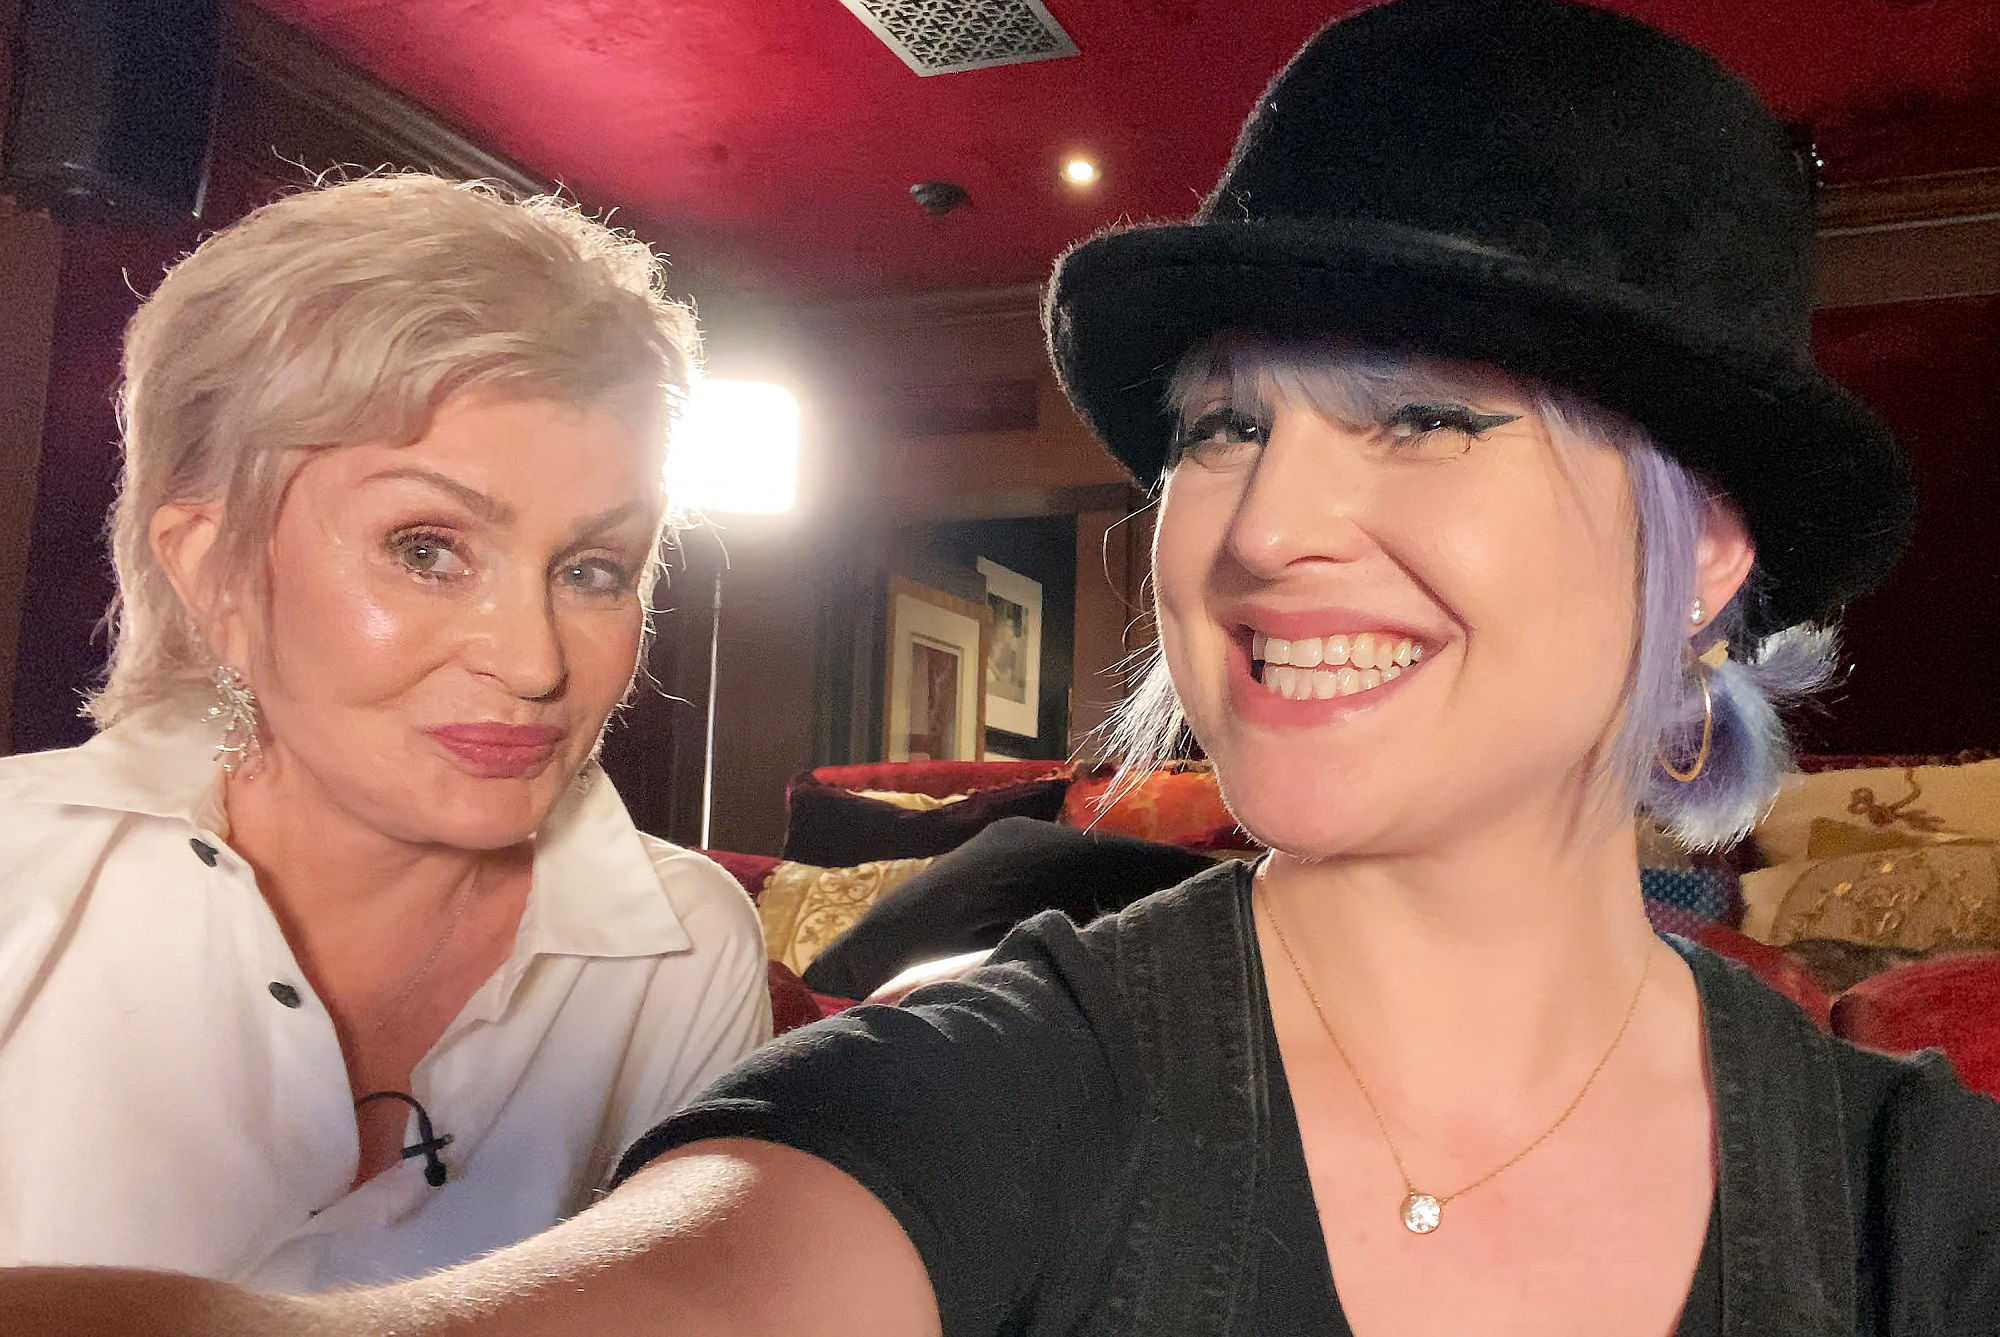 Sharon Osbourne and Kelly Osbourne